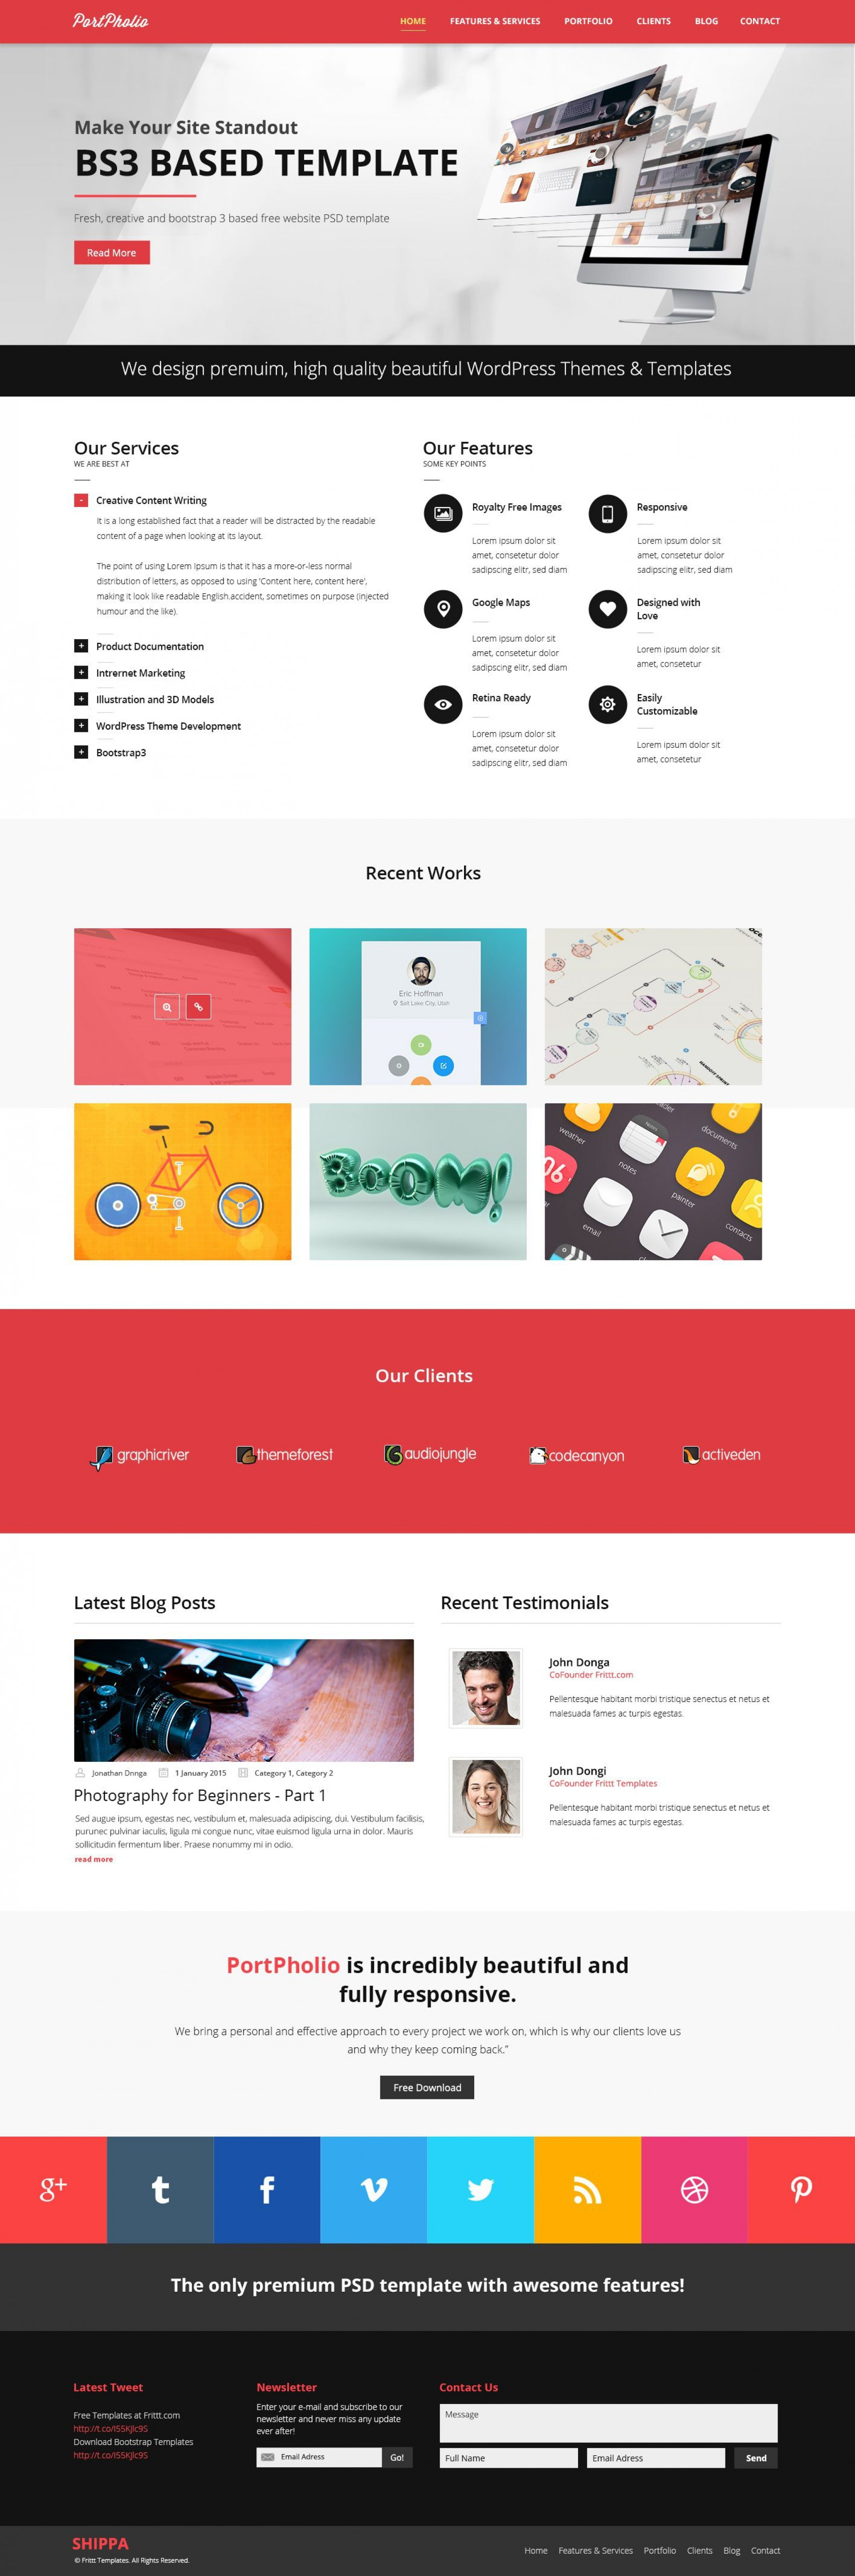 003 Rare One Page Website Template Psd Free Download Sample 1920